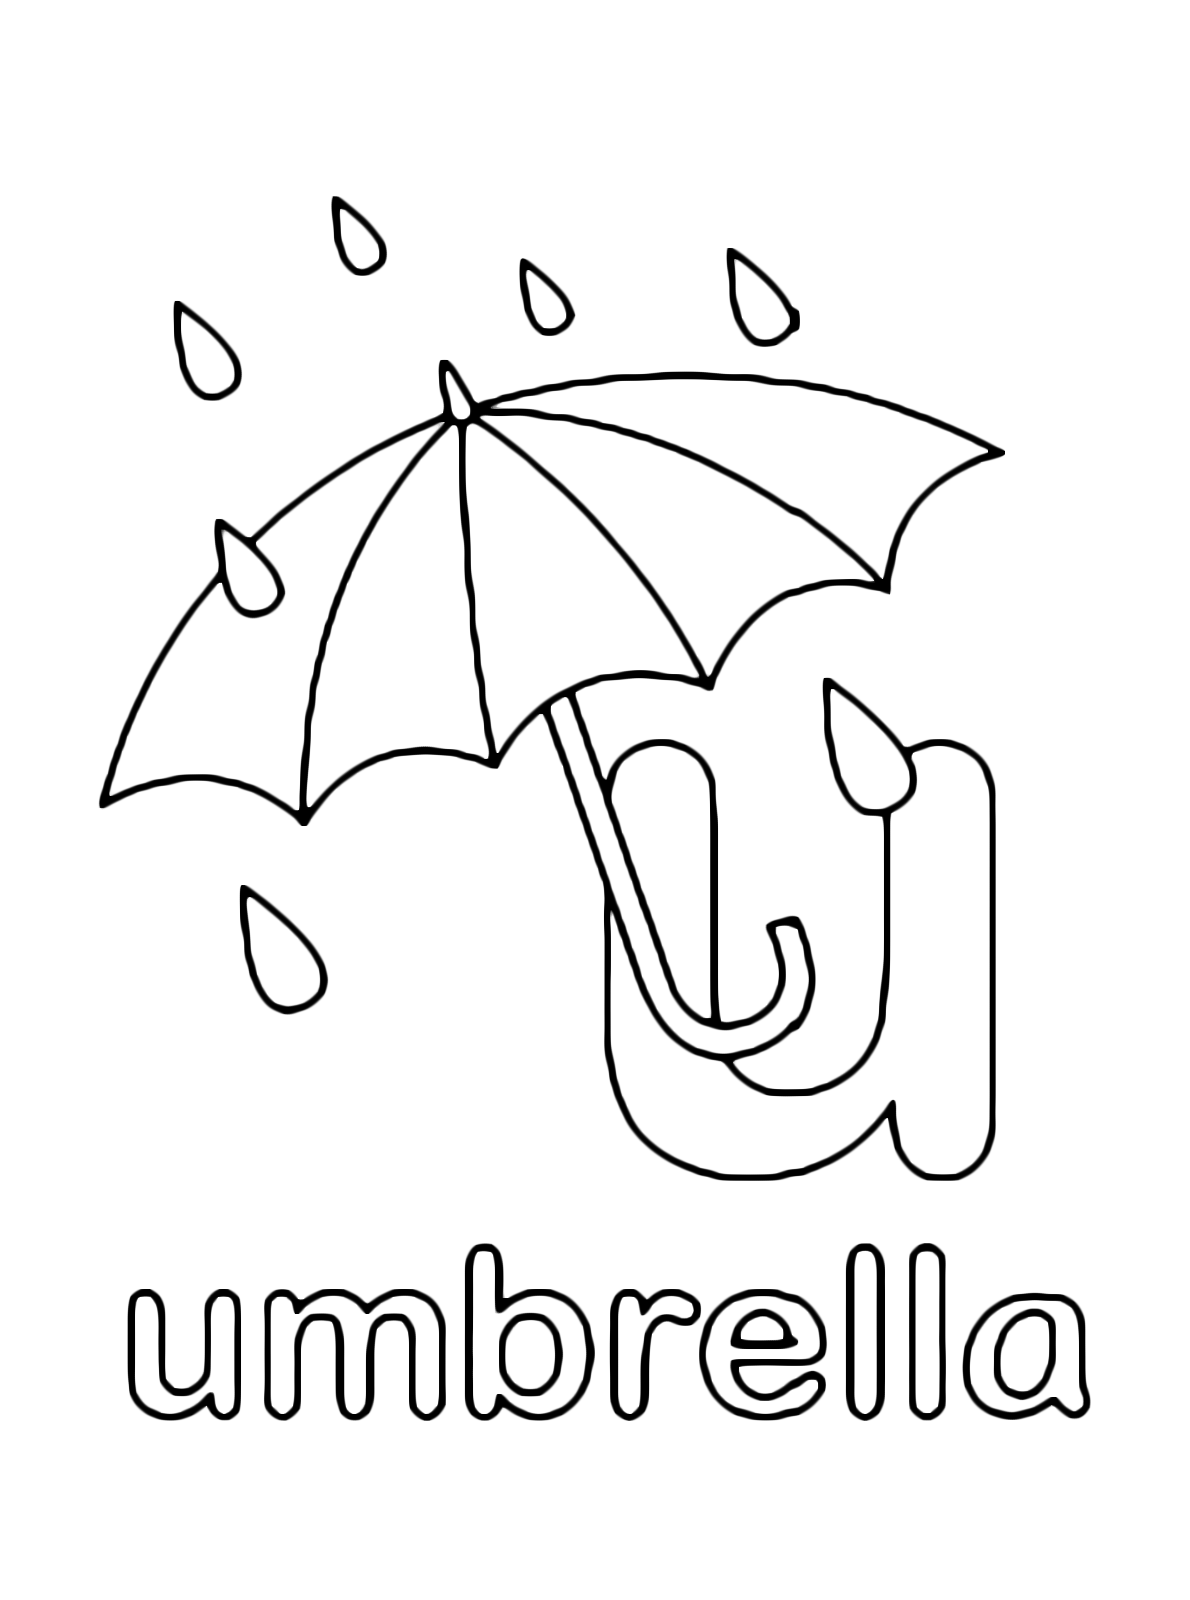 u is for umbrella coloring page letter u coloring pages getcoloringpagescom coloring is umbrella for u page